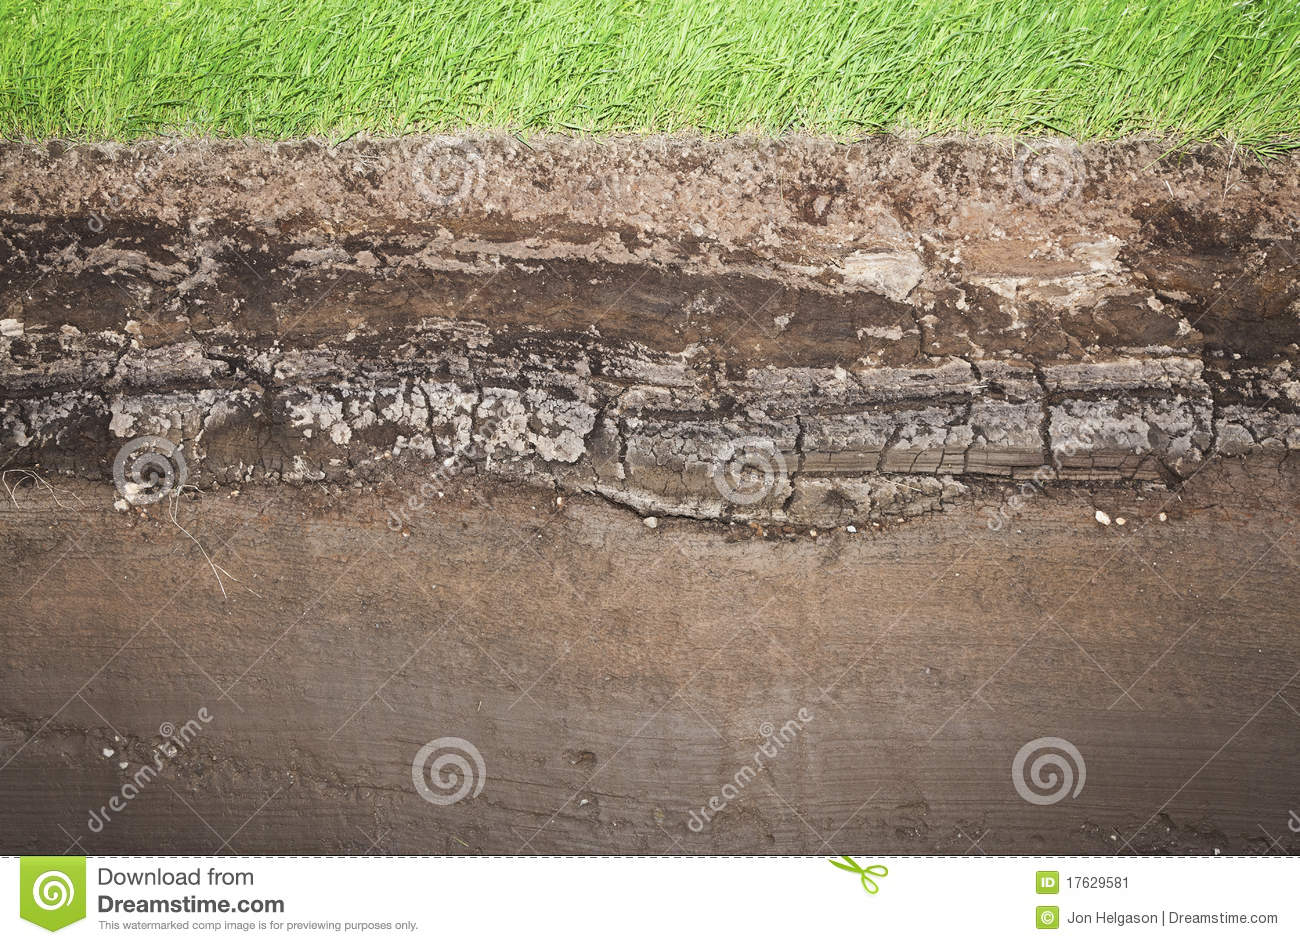 Real grass and several underground soil layers stock image for Earth soil layers